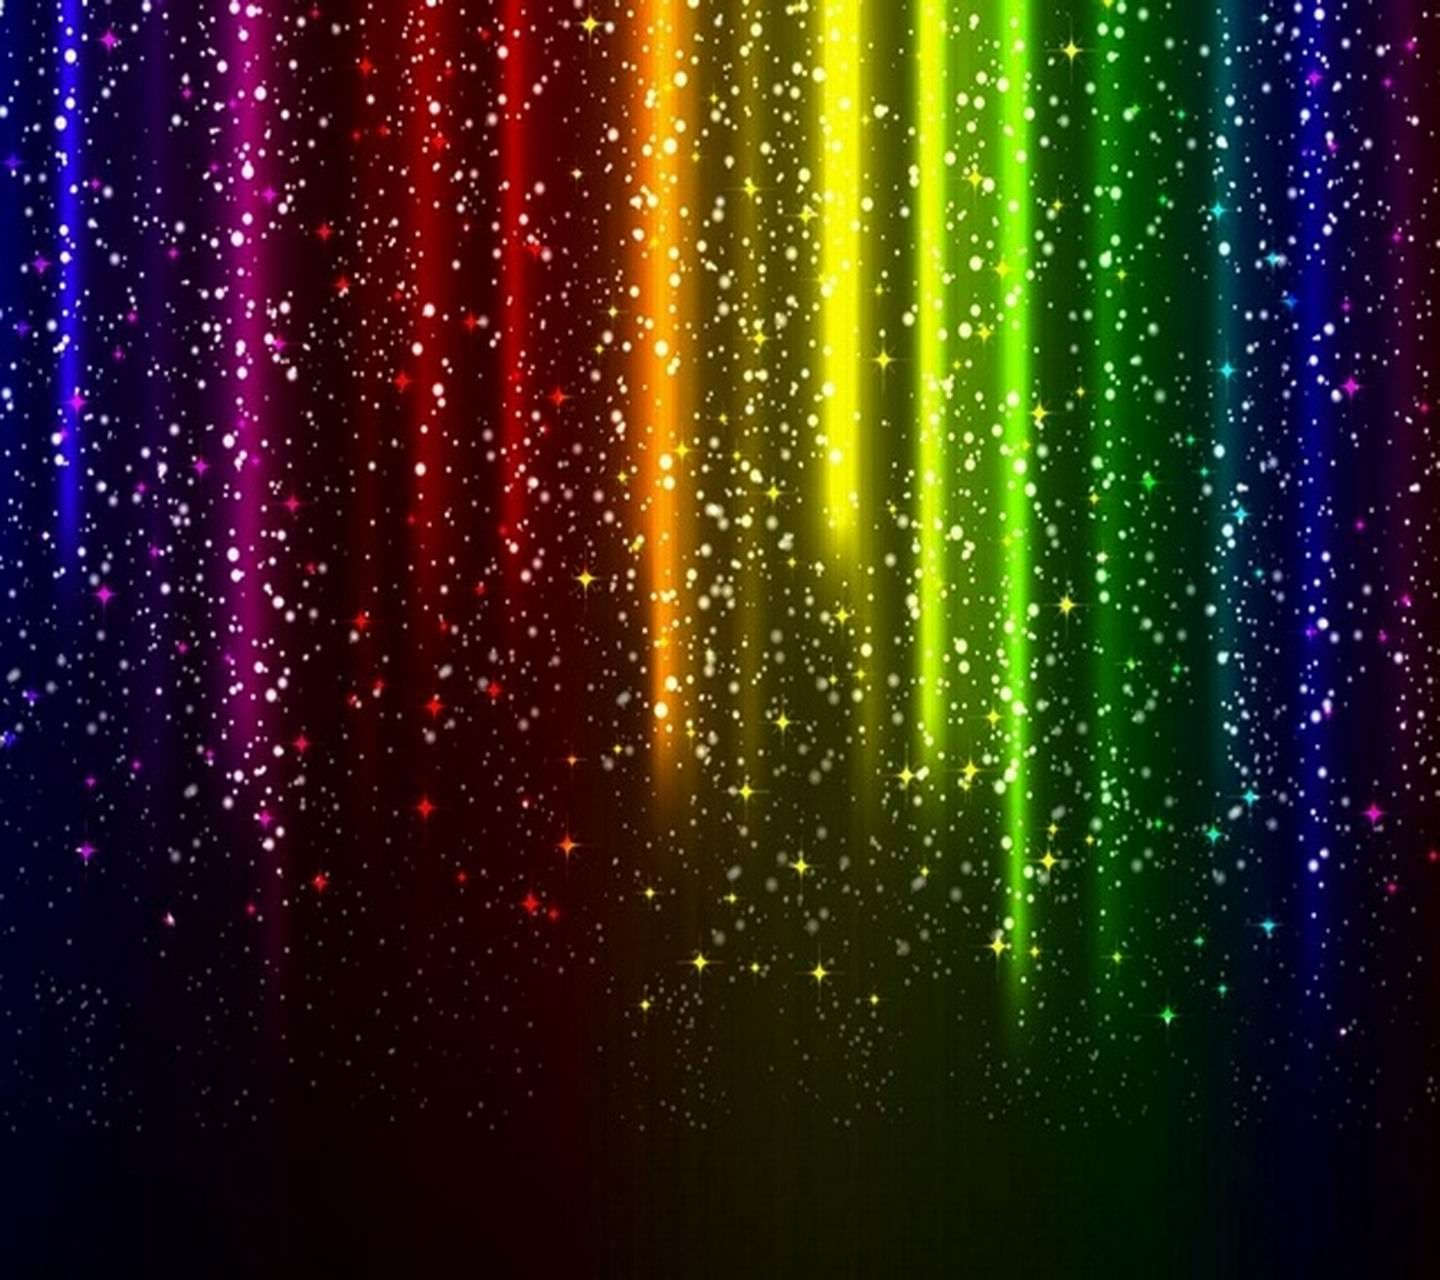 colorful glitter wallpaper ndash - photo #13